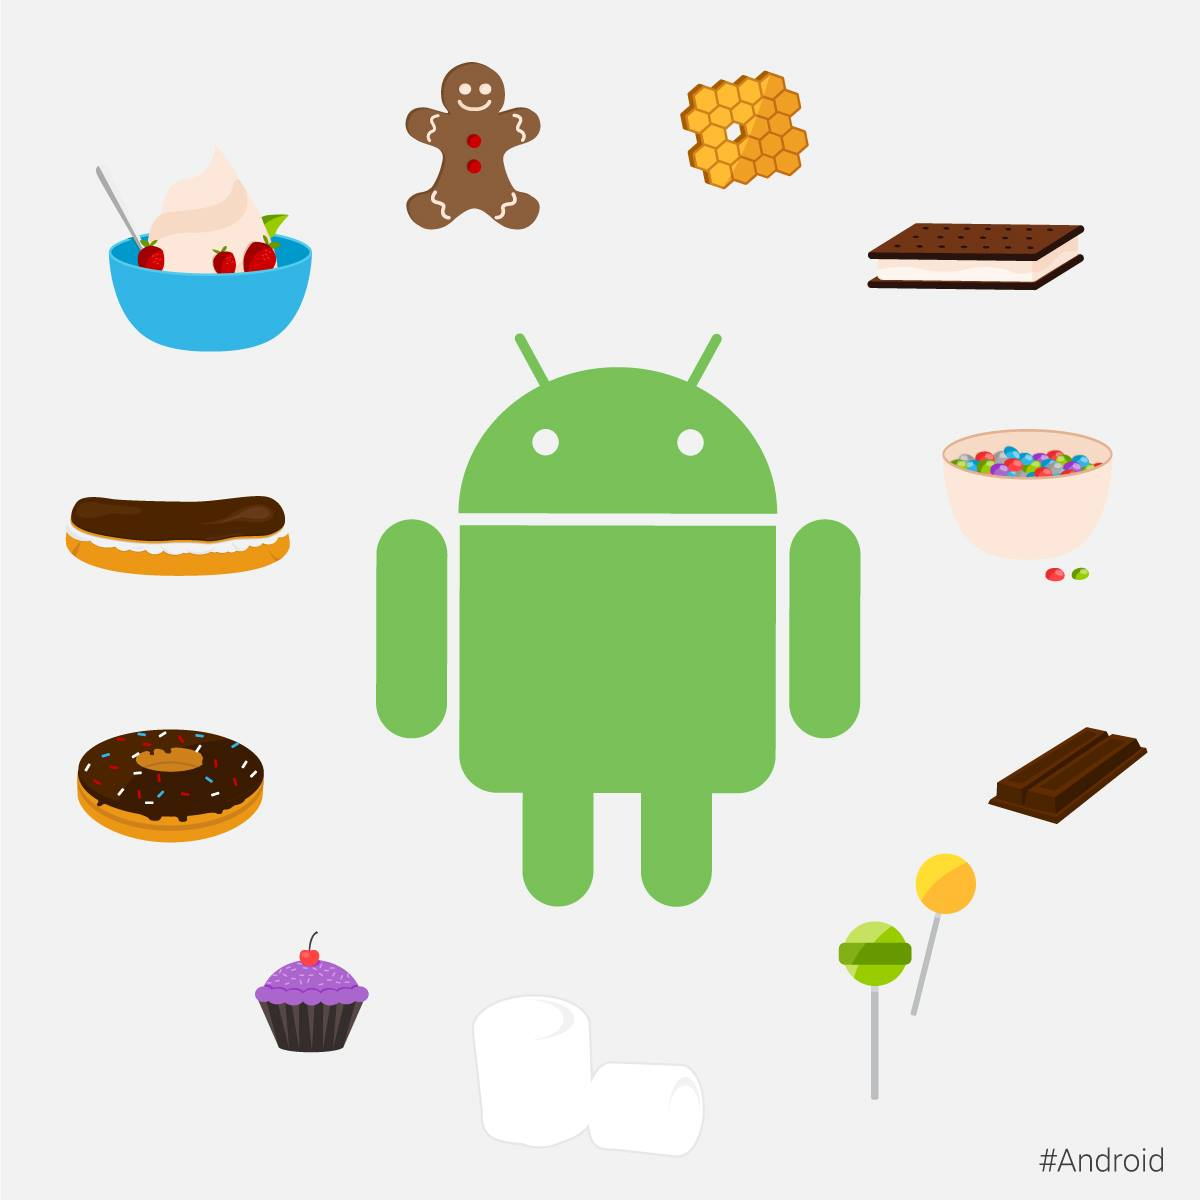 4 things Android can do to beat iOS